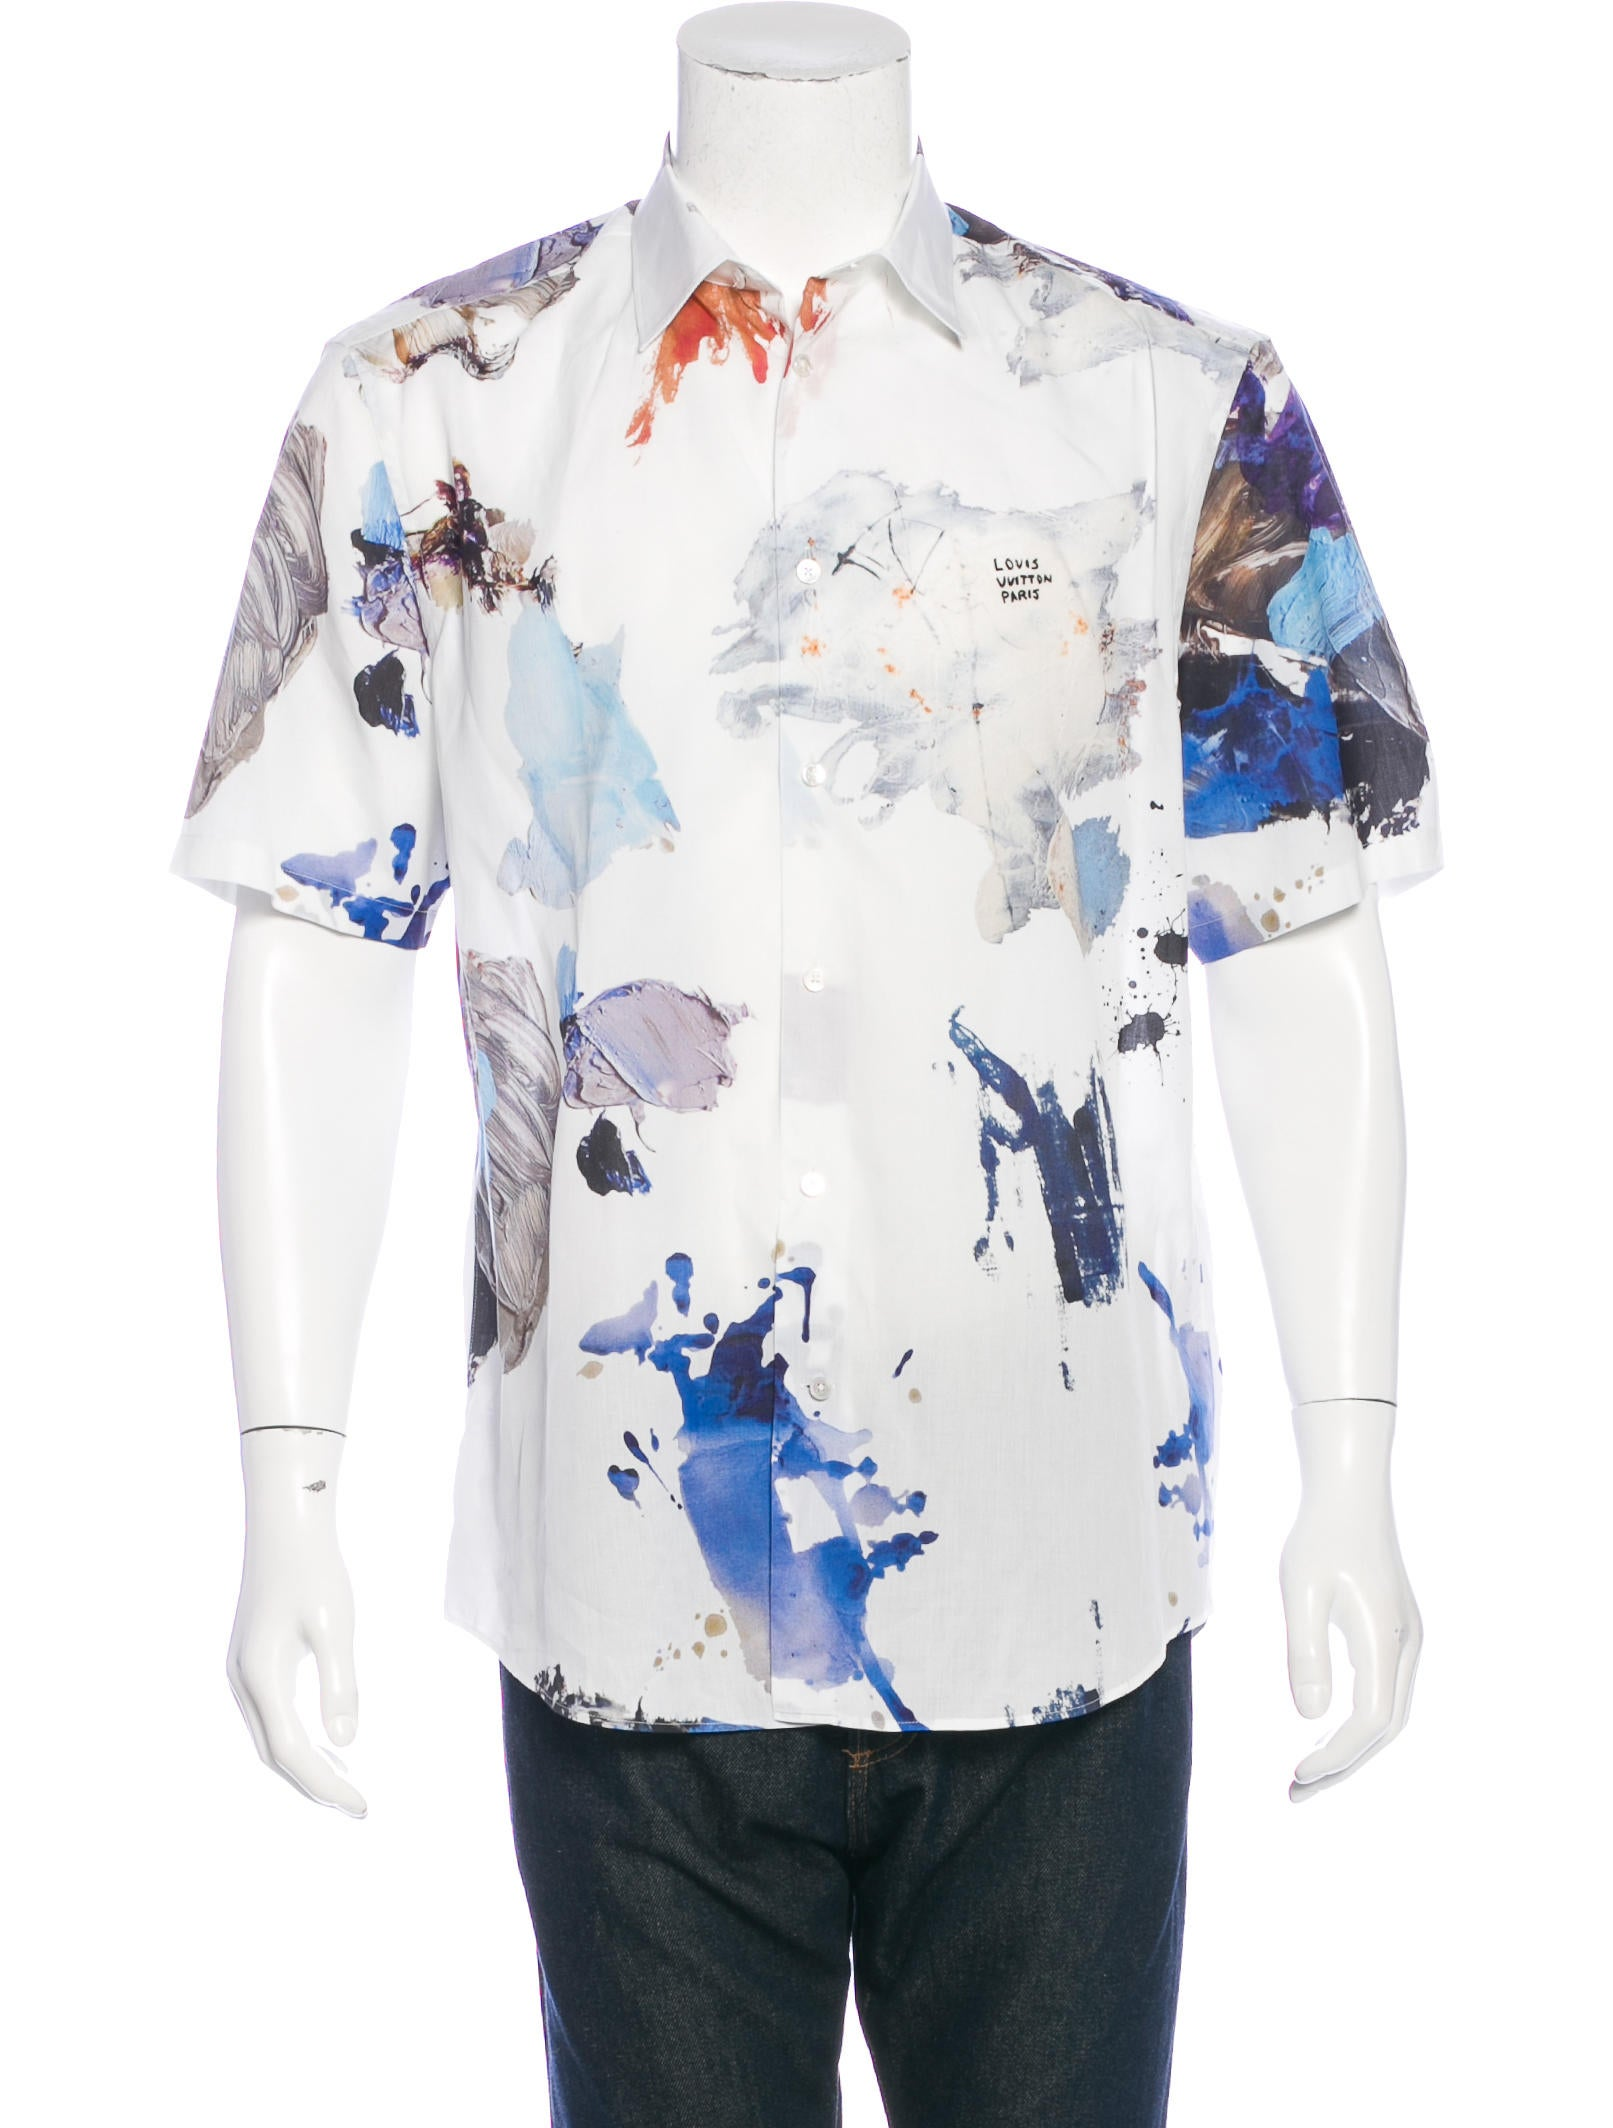 Louis Vuitton Paint Splatter Print Shirt Clothing